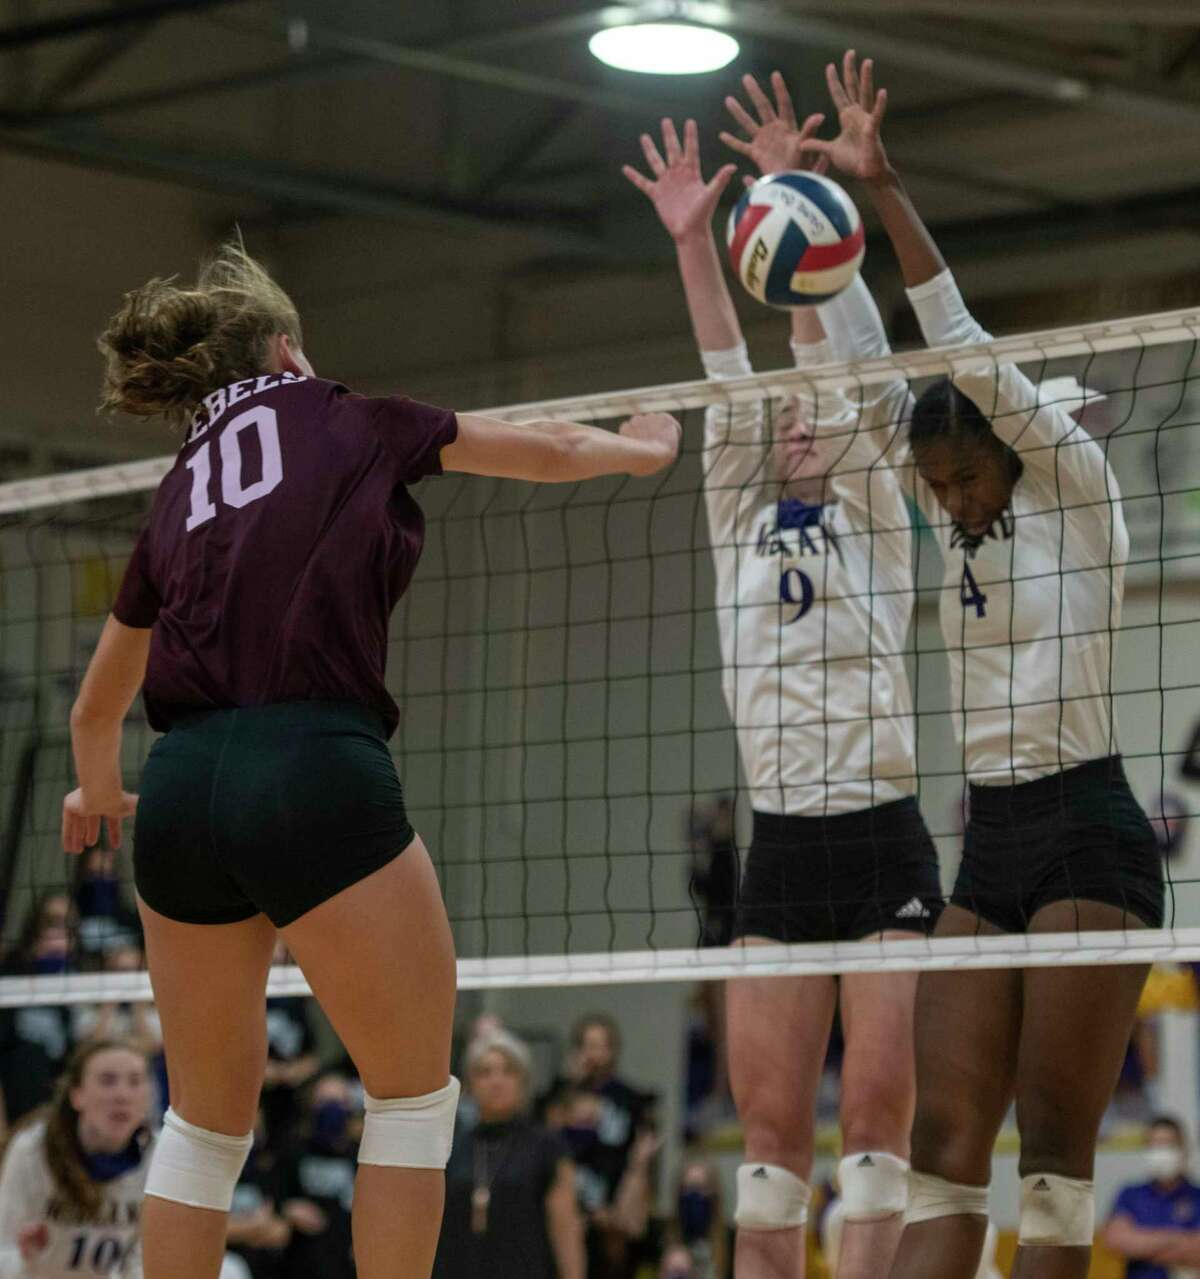 Lee?•s Brylee Awbrey (10) hits the ball into Midland High?•s Madelyn Kennedy (9) and Aniya Clinton (4) block Friday, Oct. 2, 2020 at Midland High School. Jacy Lewis/Reporter-Telegram